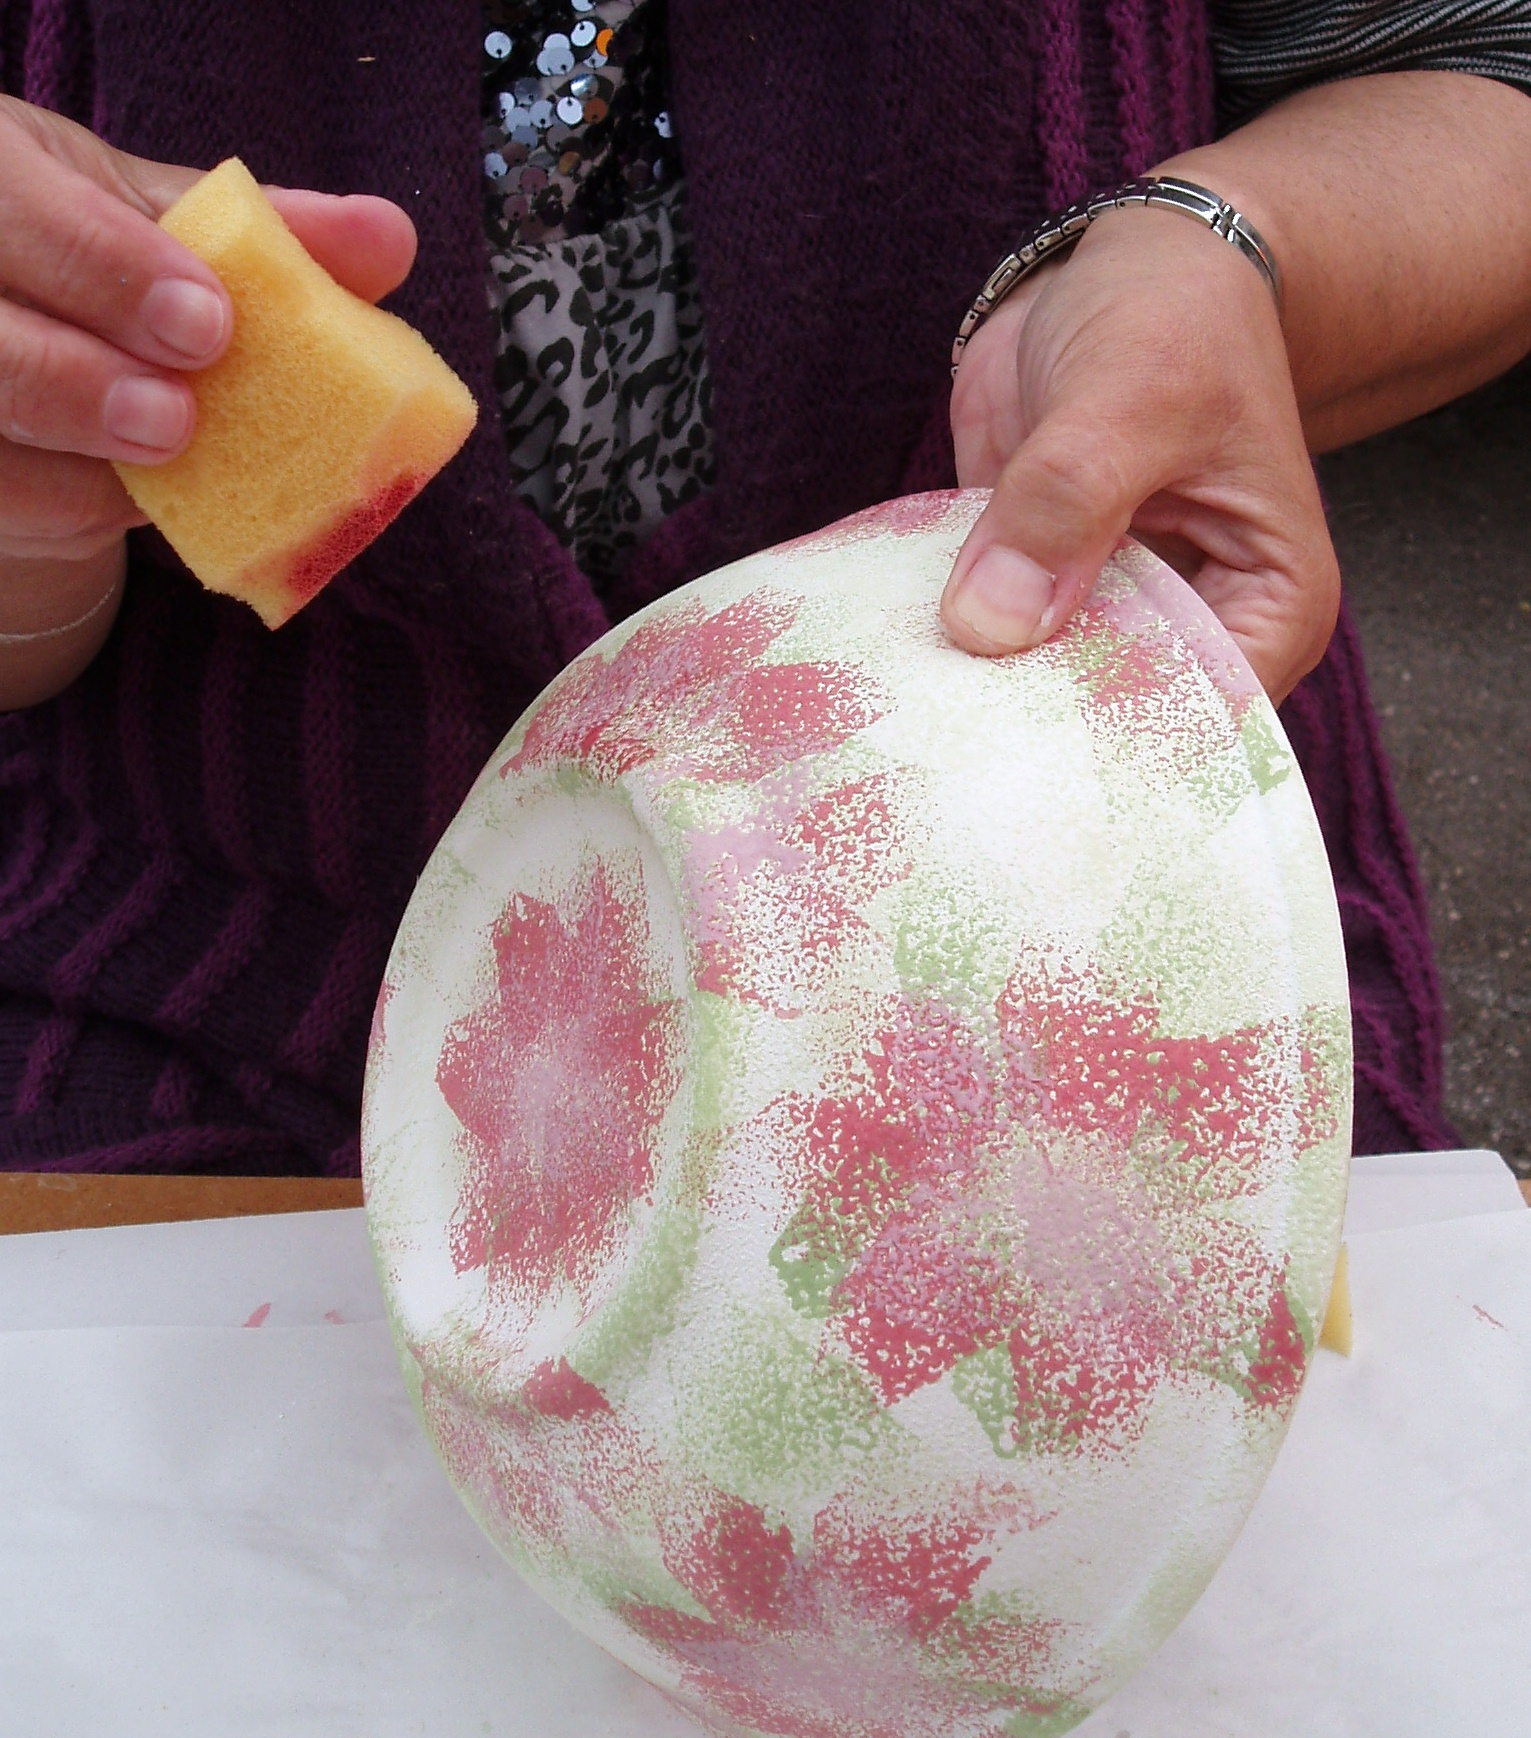 Plants arts and crafts - Decopatch A Craft Which Is Proving To Be Very Popular Everyone Can Do It However Gifted Or Not In Arts And Crafts